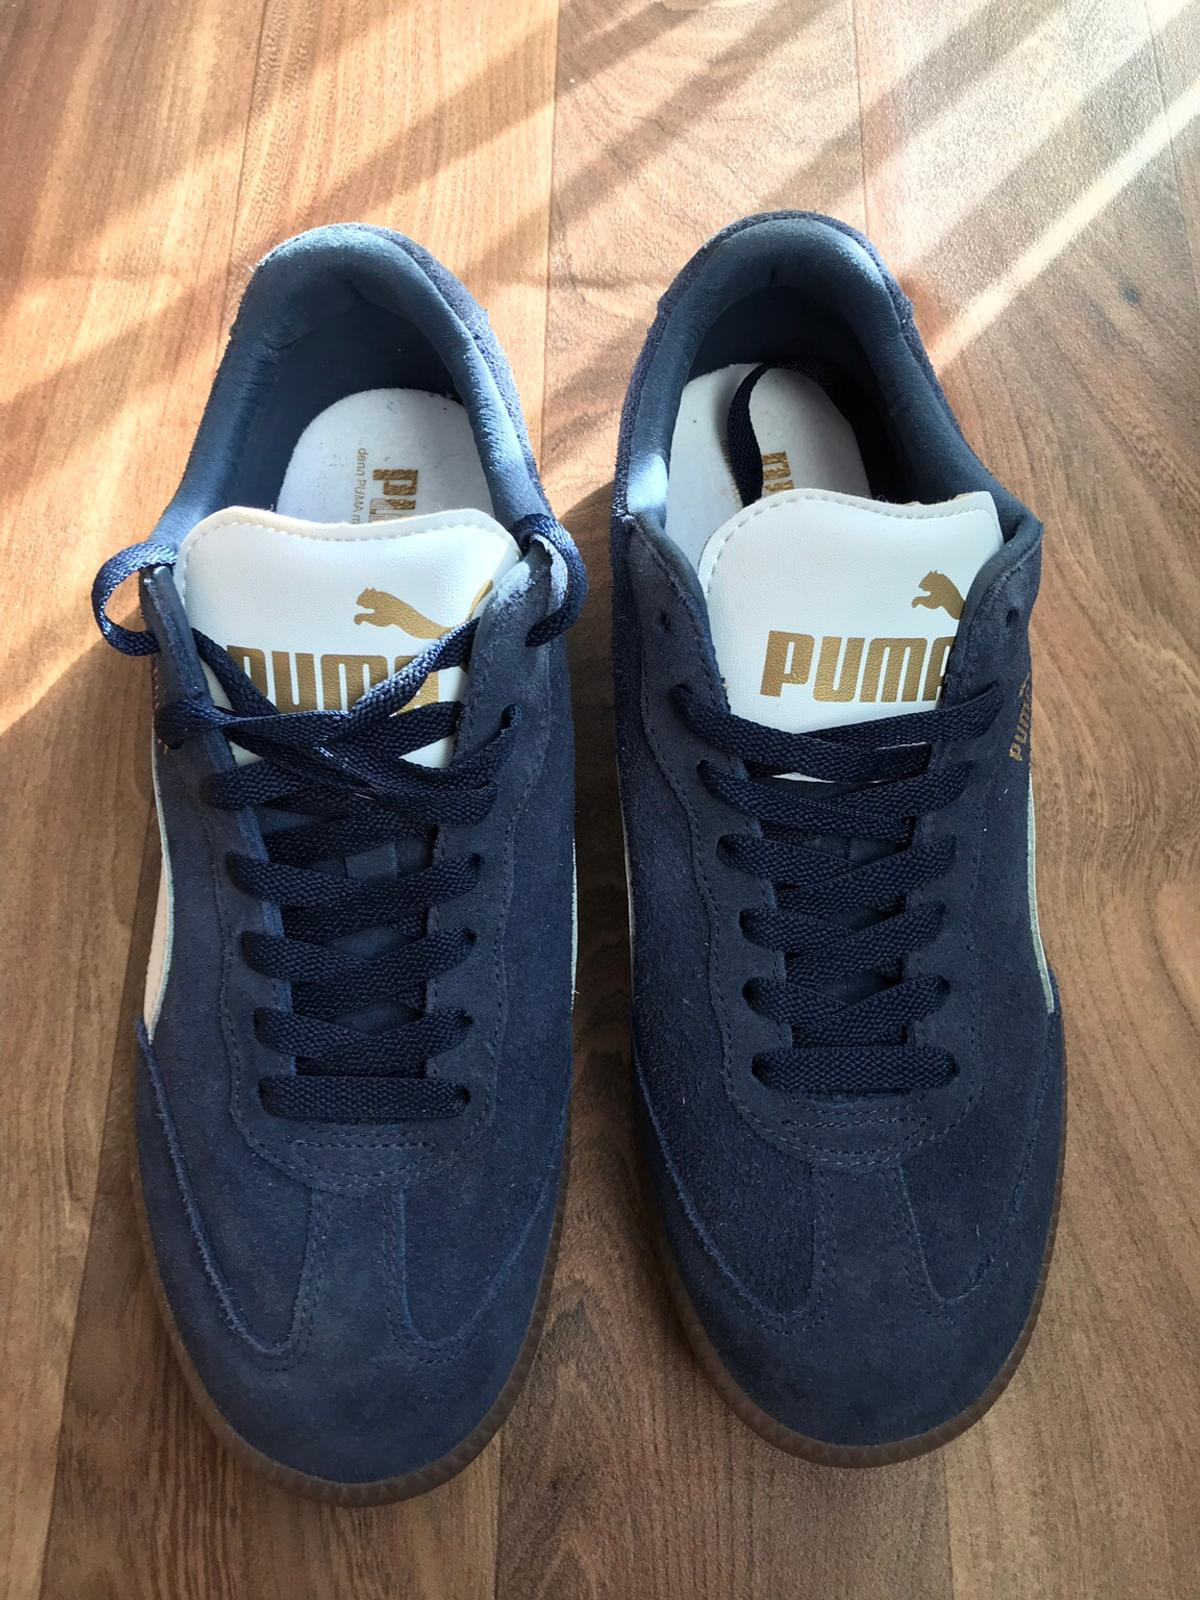 newest aef33 3613e PUMA LIGA SUEDE TRAINERS NAVY/WHITE in Ketley for £20.00 for ...